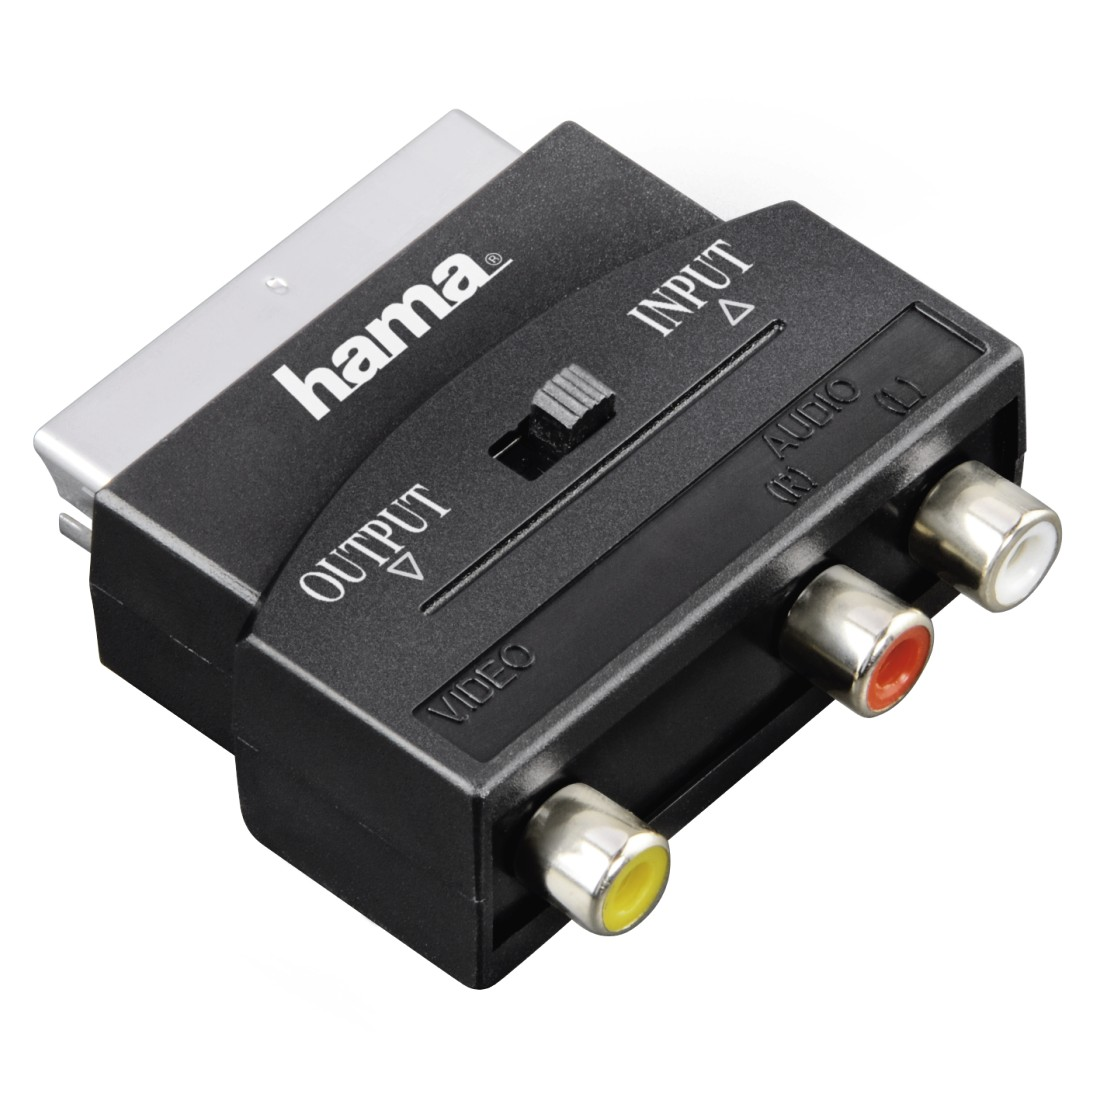 abx Druckfähige Abbildung - Hama Classic Line, Video-Adapter, 3 Cinch-Kupplungen (1x Video/Audio L u. R) - Scart-Stecker